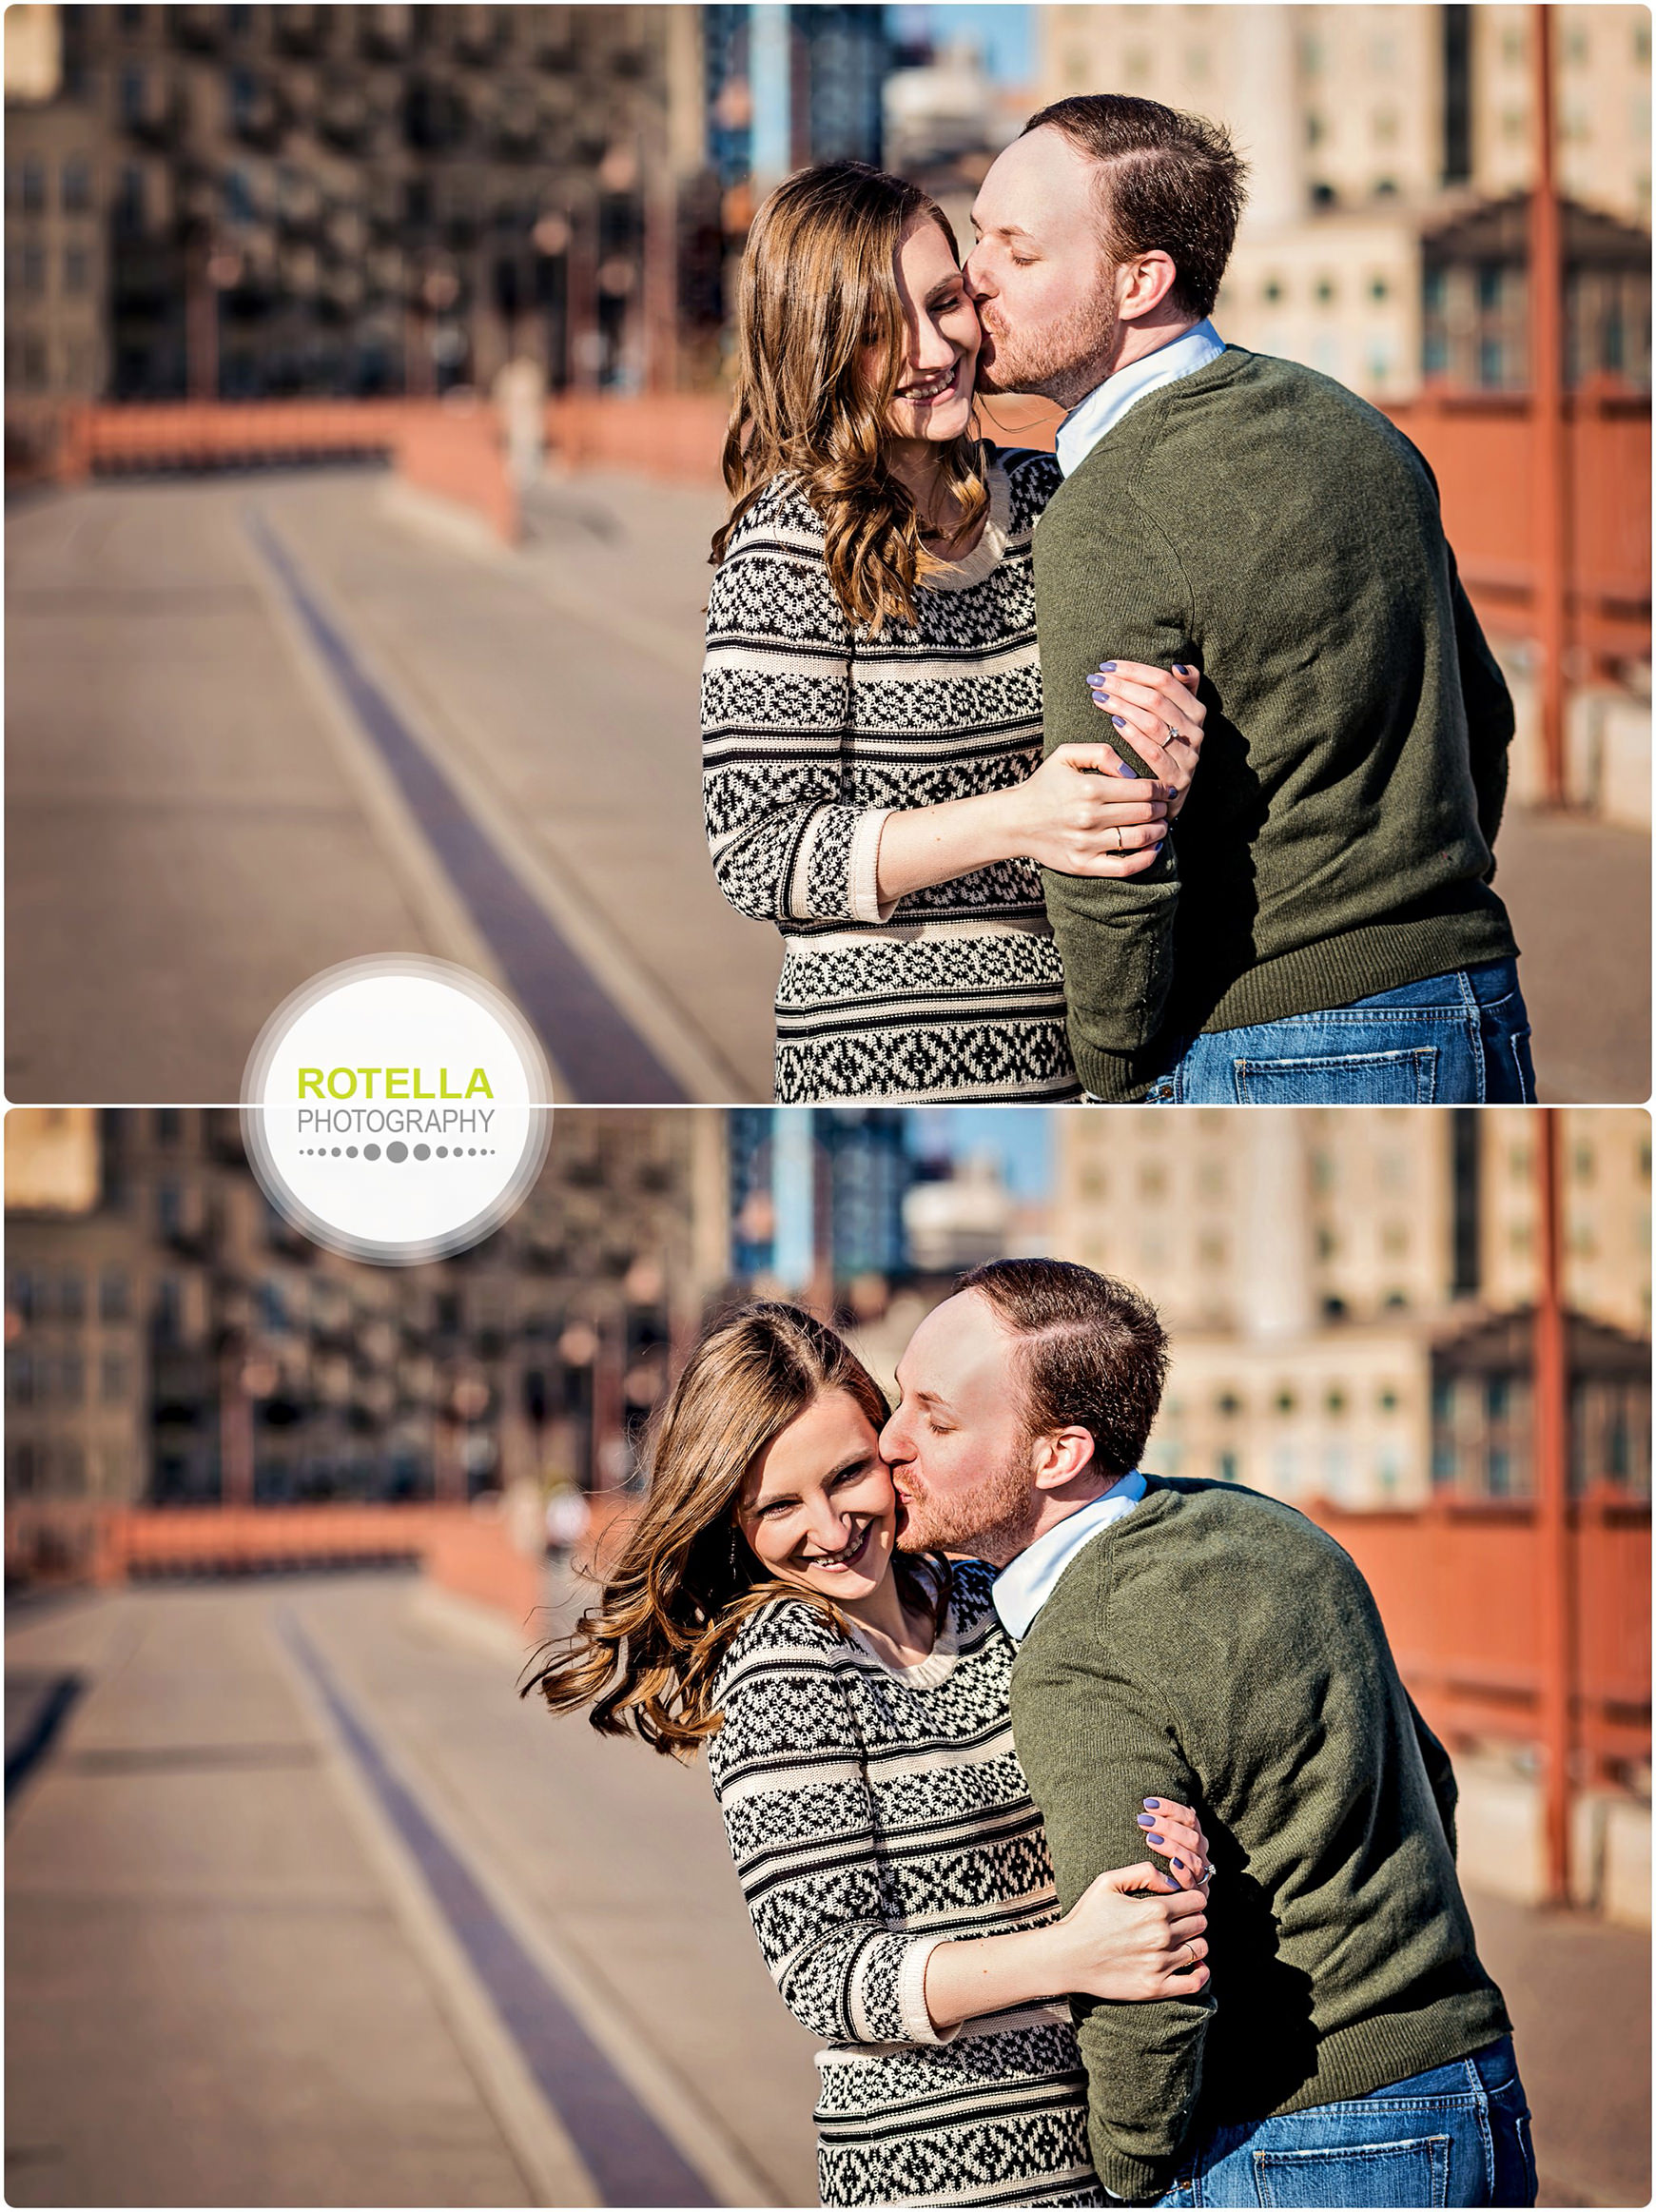 A-A-Minneapolis-Engagement-Photography-Rotella-Photography-2015_0003